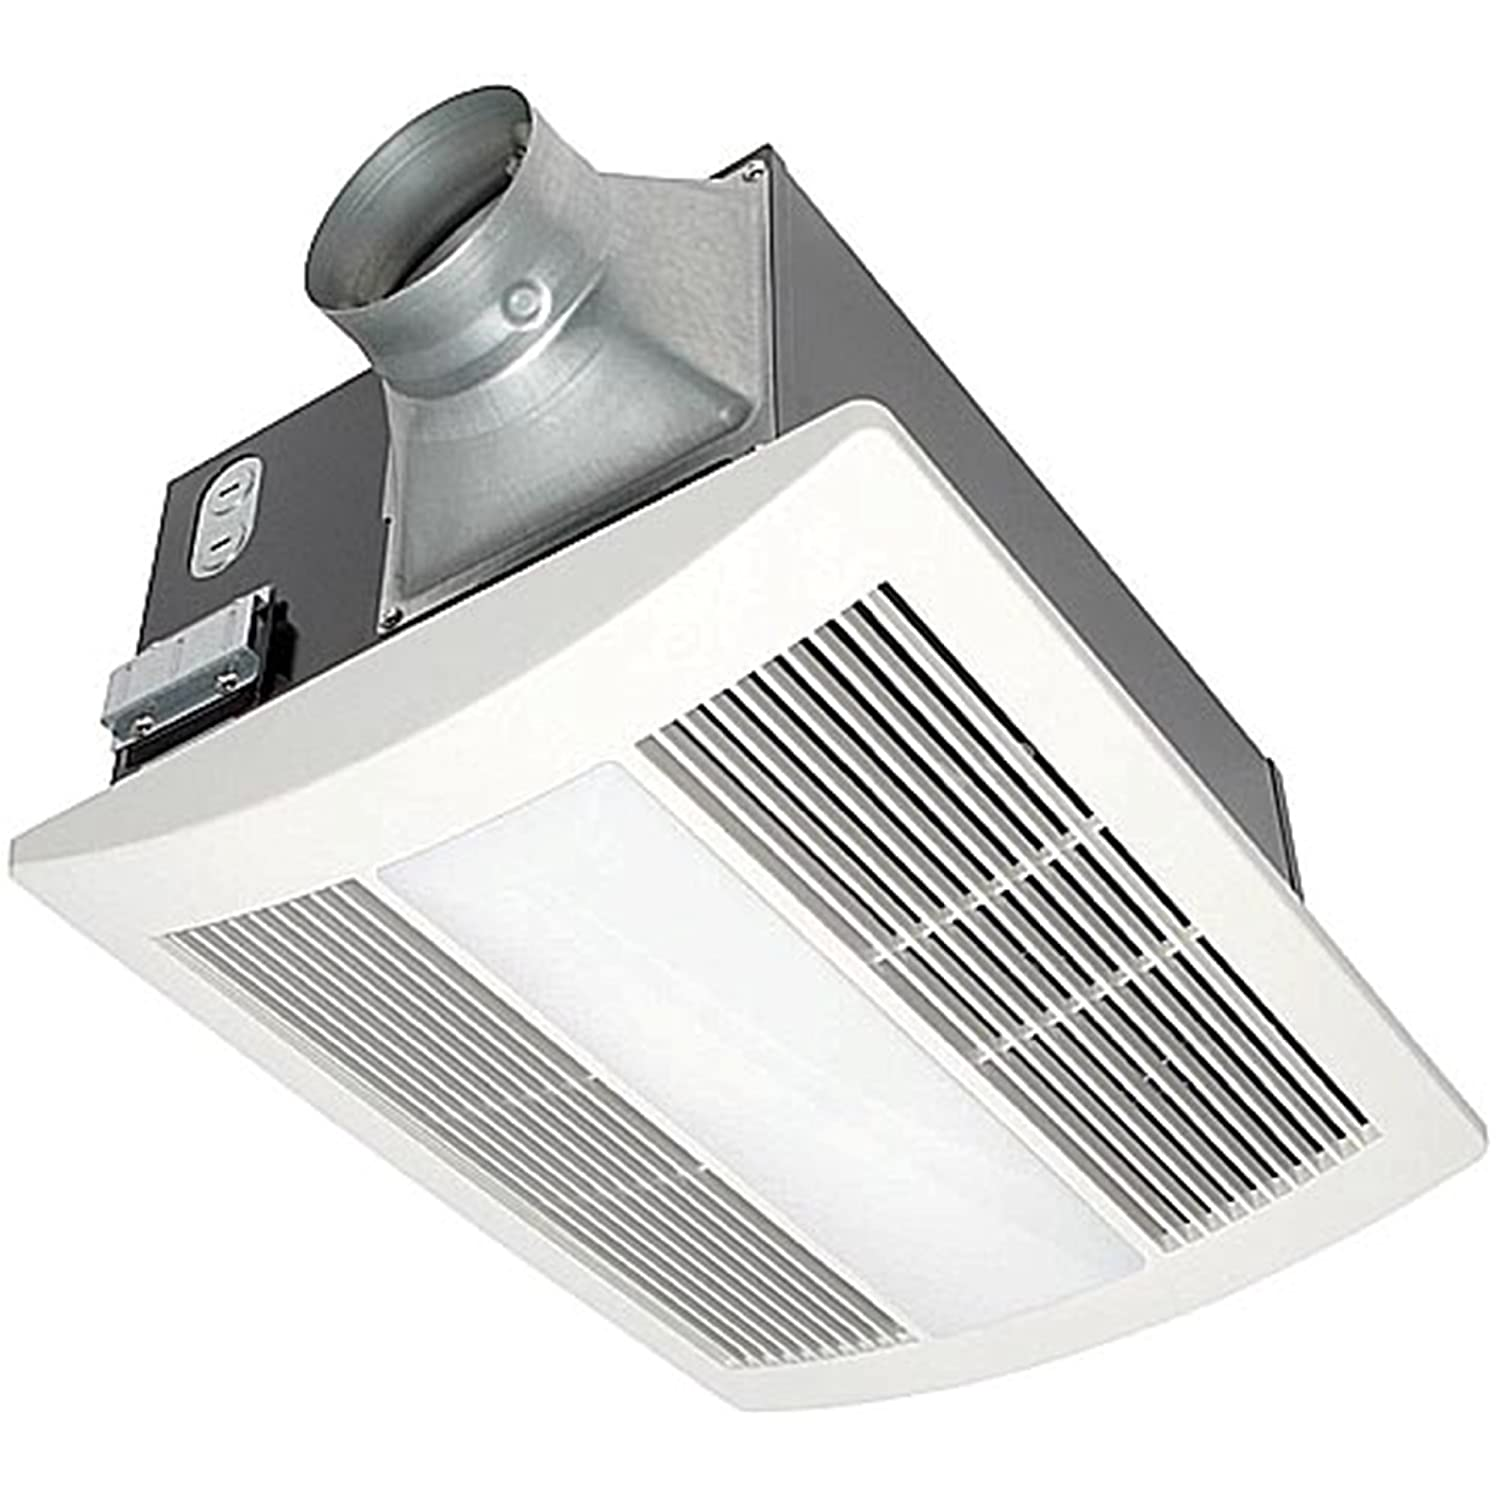 Panasonic FV-11VHL2 WhisperWarm 110 CFM Ceiling Mounted Fan/Heat/Light -Night-Light Combination White - Heaters - Amazon.com  sc 1 st  Amazon.com & Panasonic FV-11VHL2 WhisperWarm 110 CFM Ceiling Mounted Fan/Heat ... azcodes.com